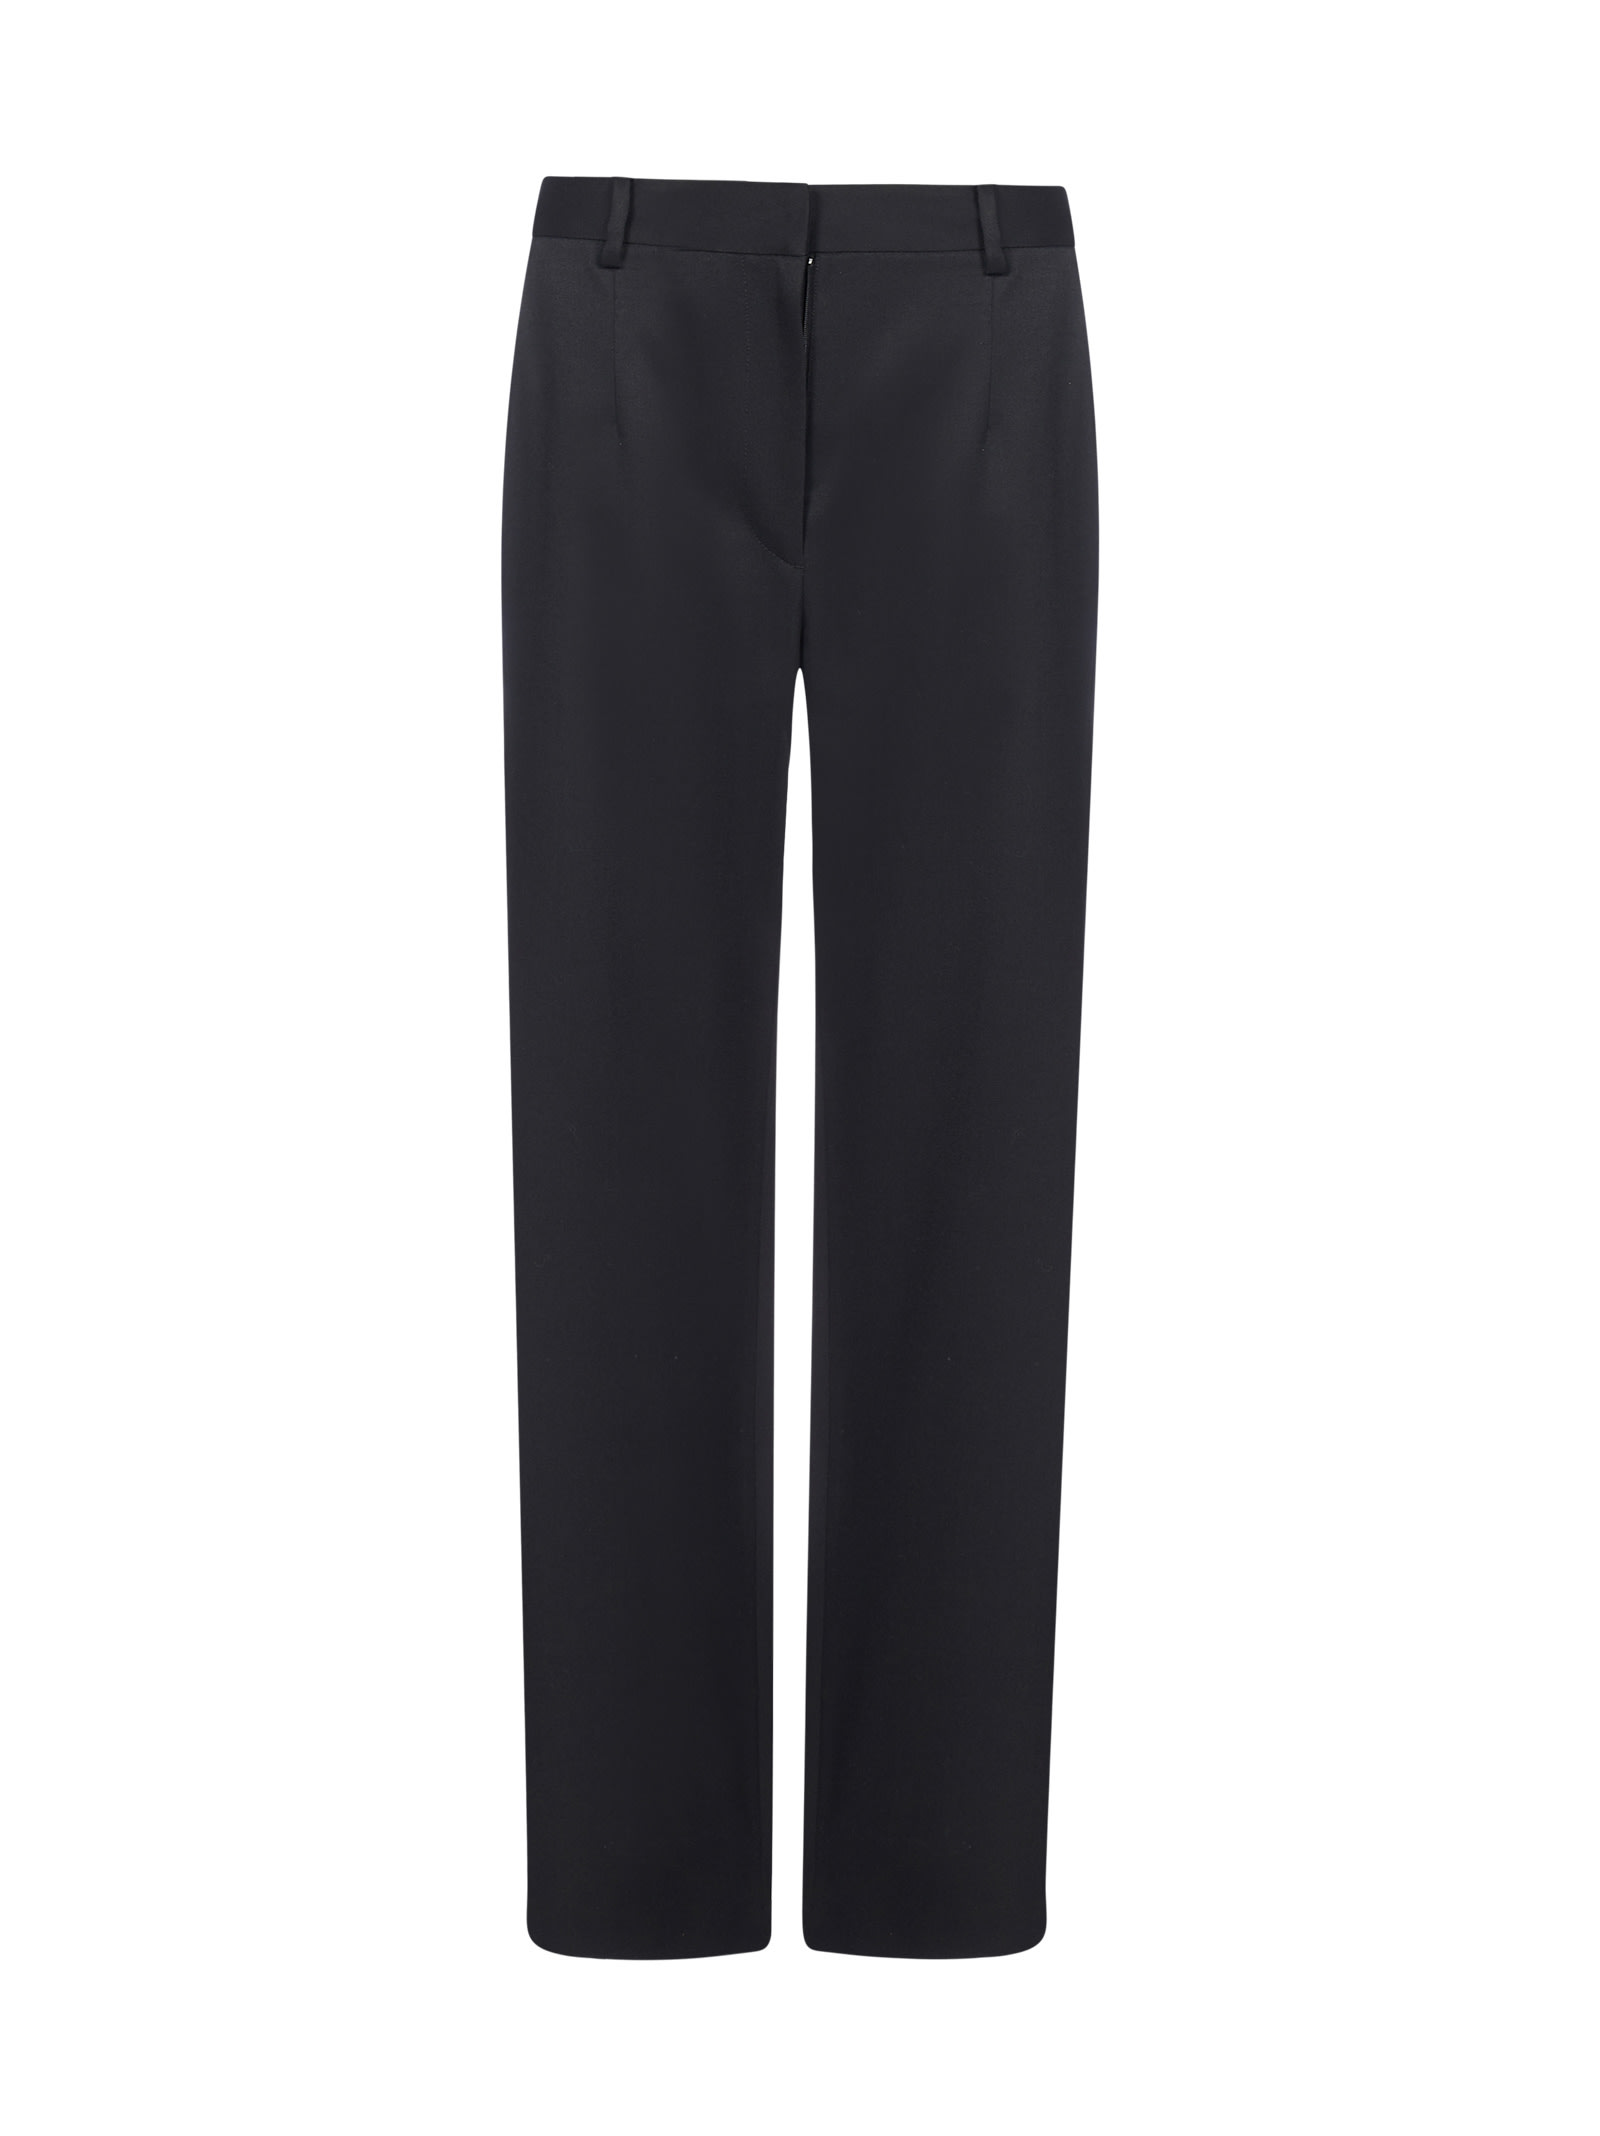 MM6 Maison Margiela Wool-blend Palazzo Trousers